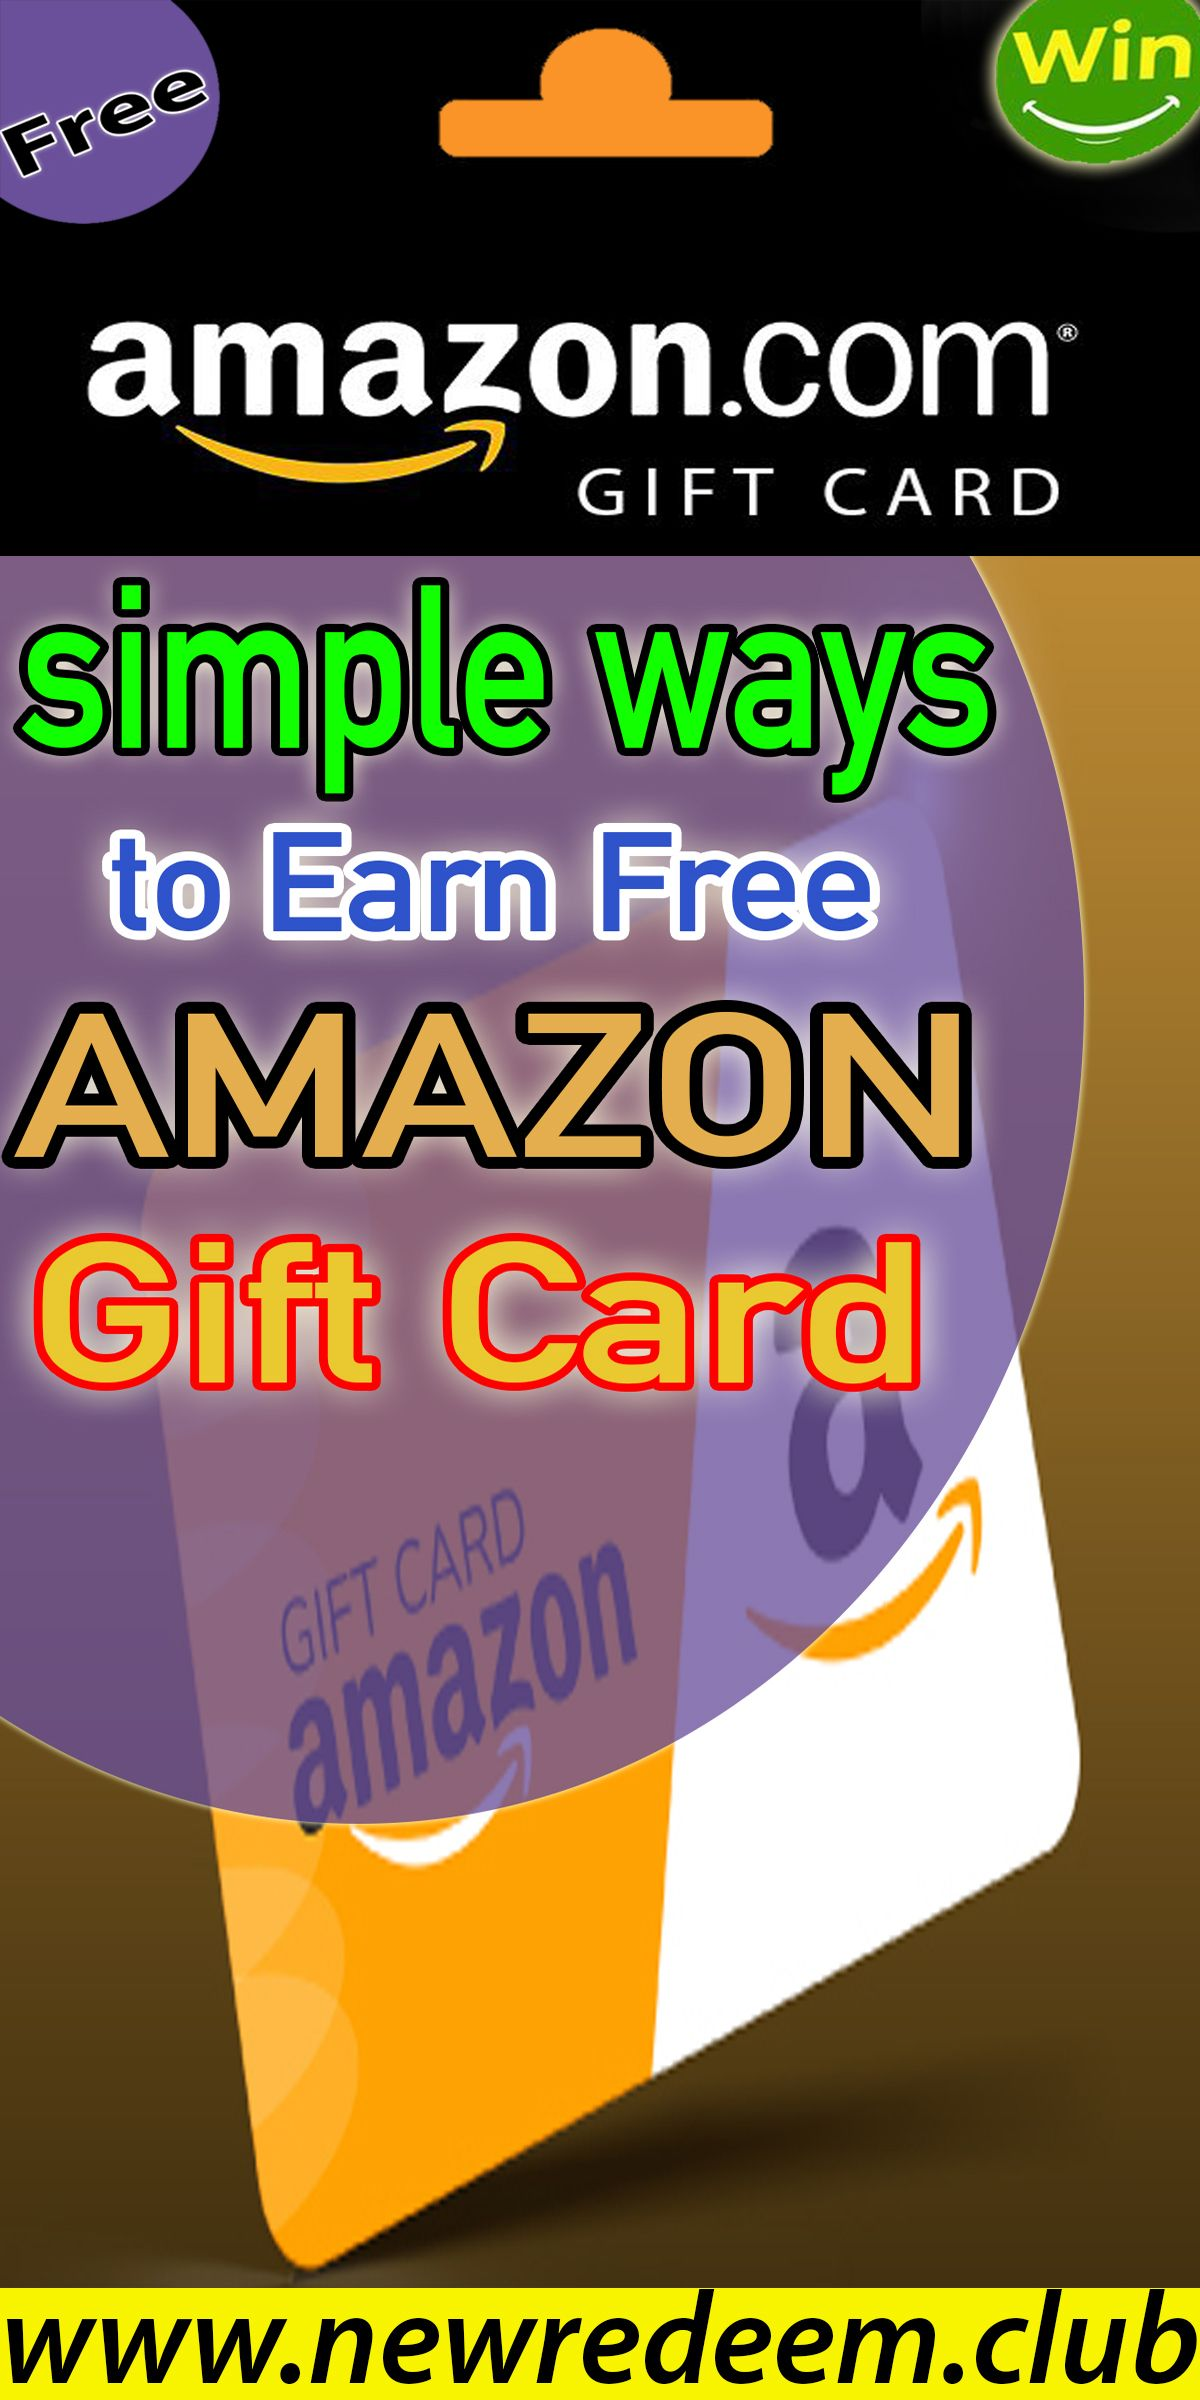 Photo of $1000 FREE Amazon Gift Cards